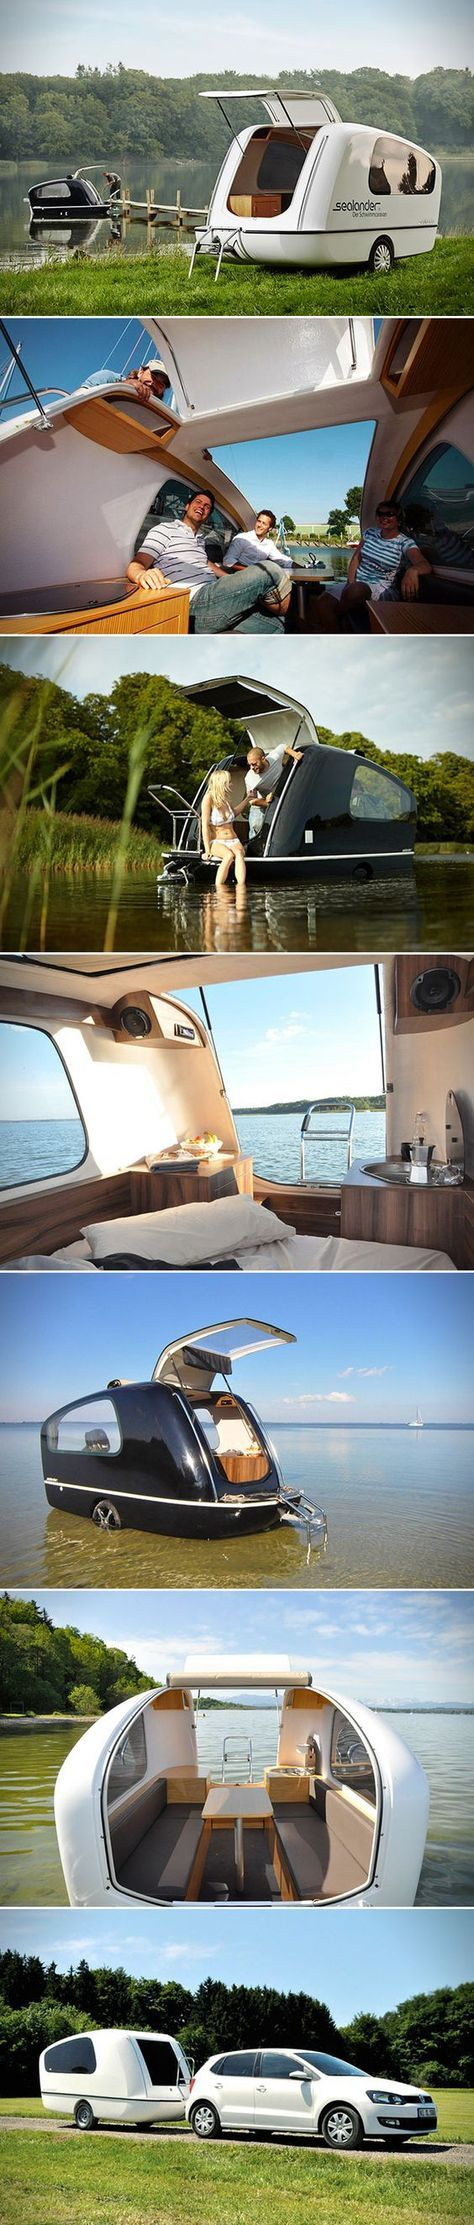 sealander this camper can also be used as a boat. Black Bedroom Furniture Sets. Home Design Ideas